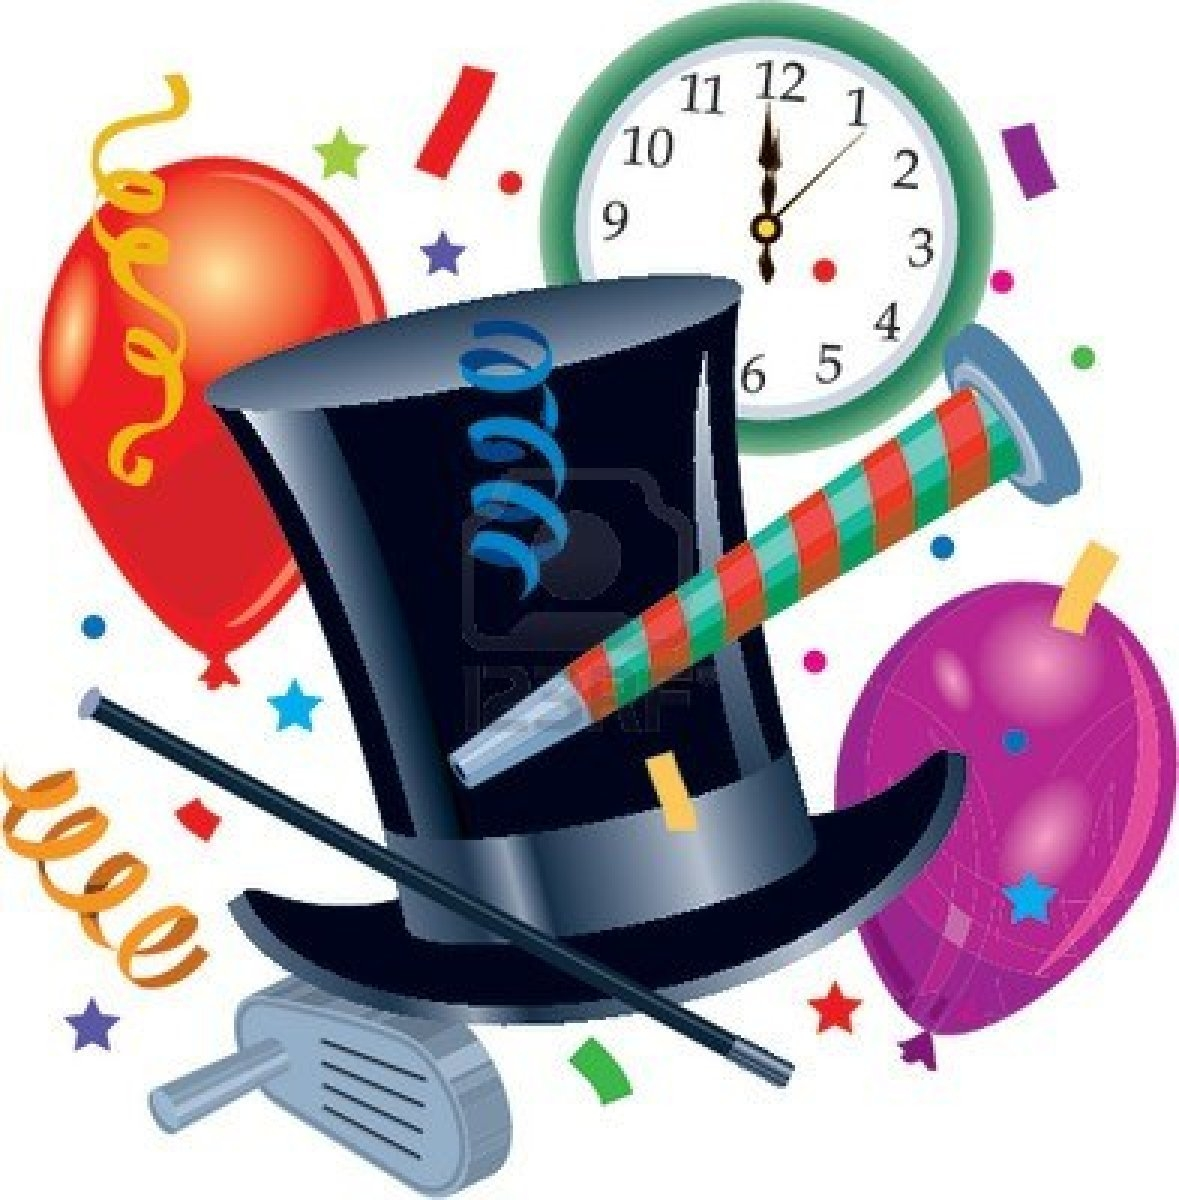 Years free clipart eve party. New year gallery digital